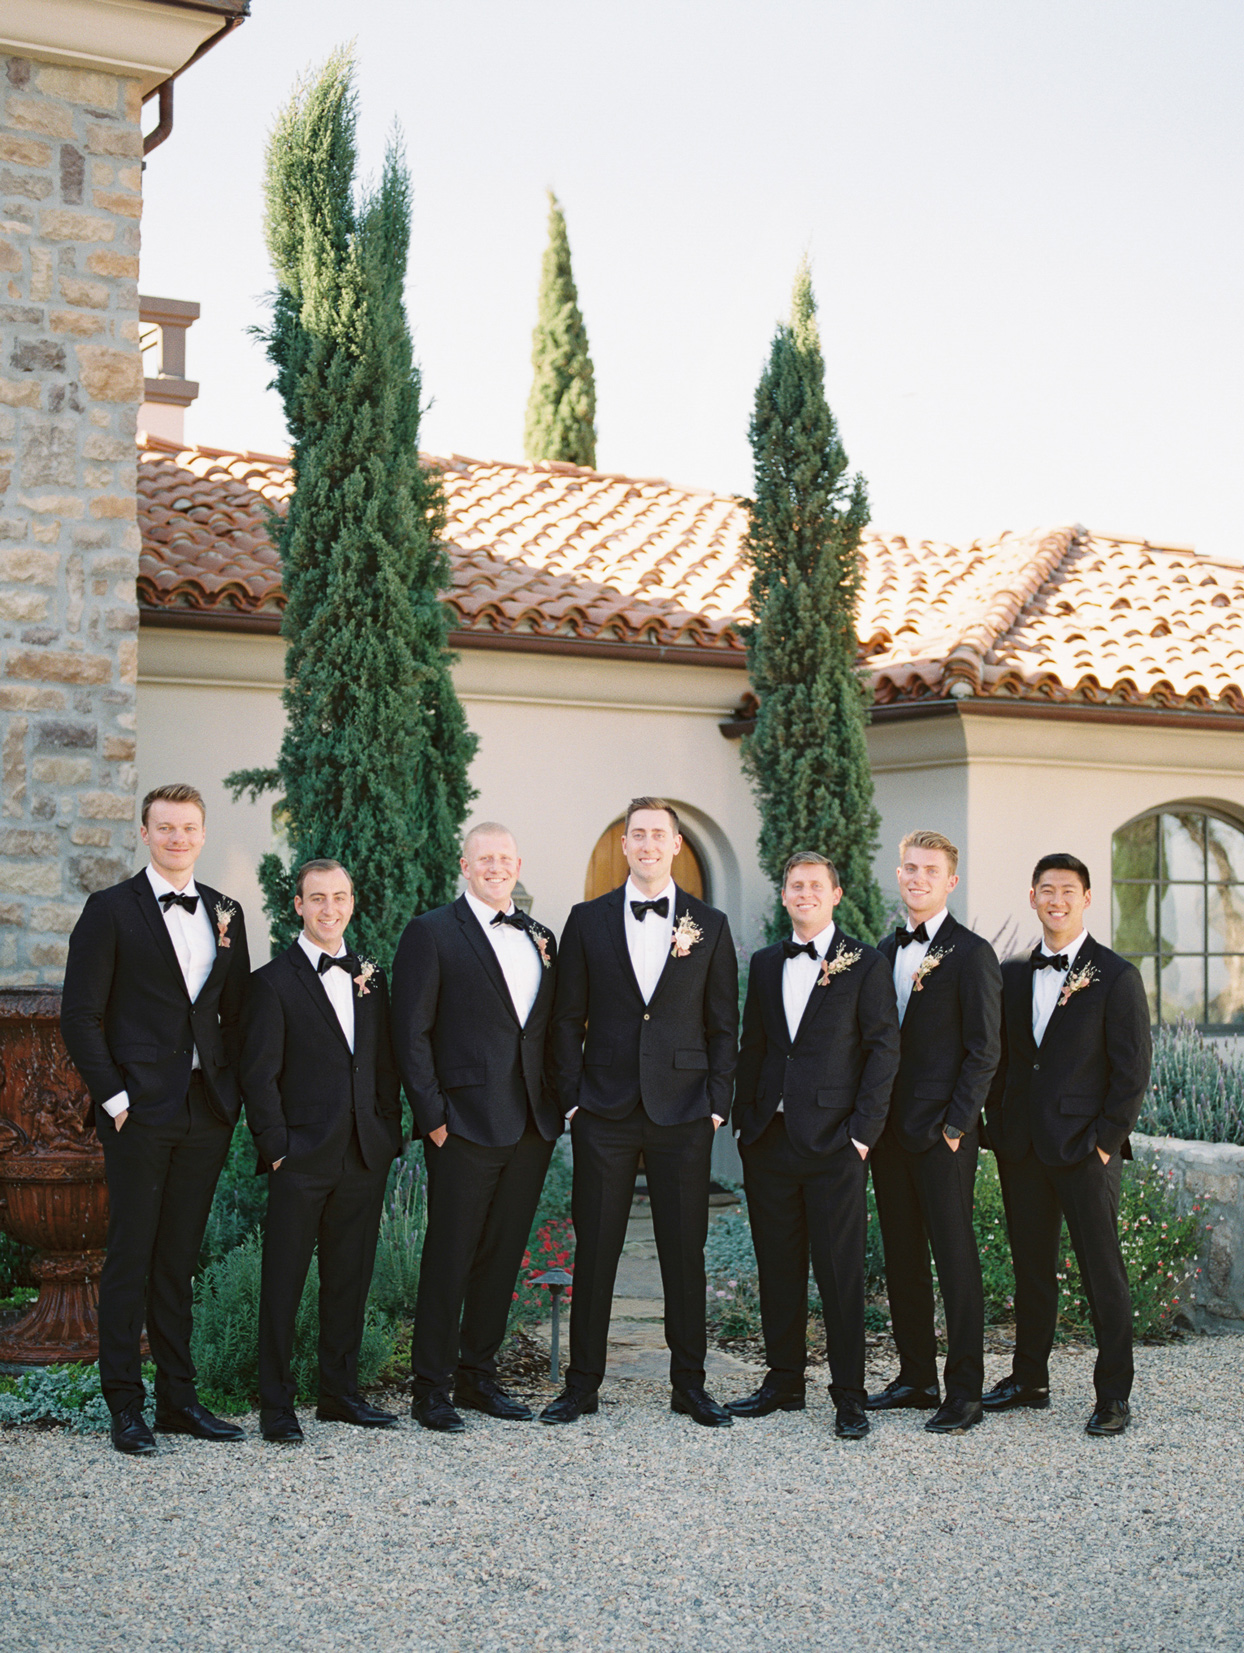 Groom and groomsmen in black tuxes from The Black Tux